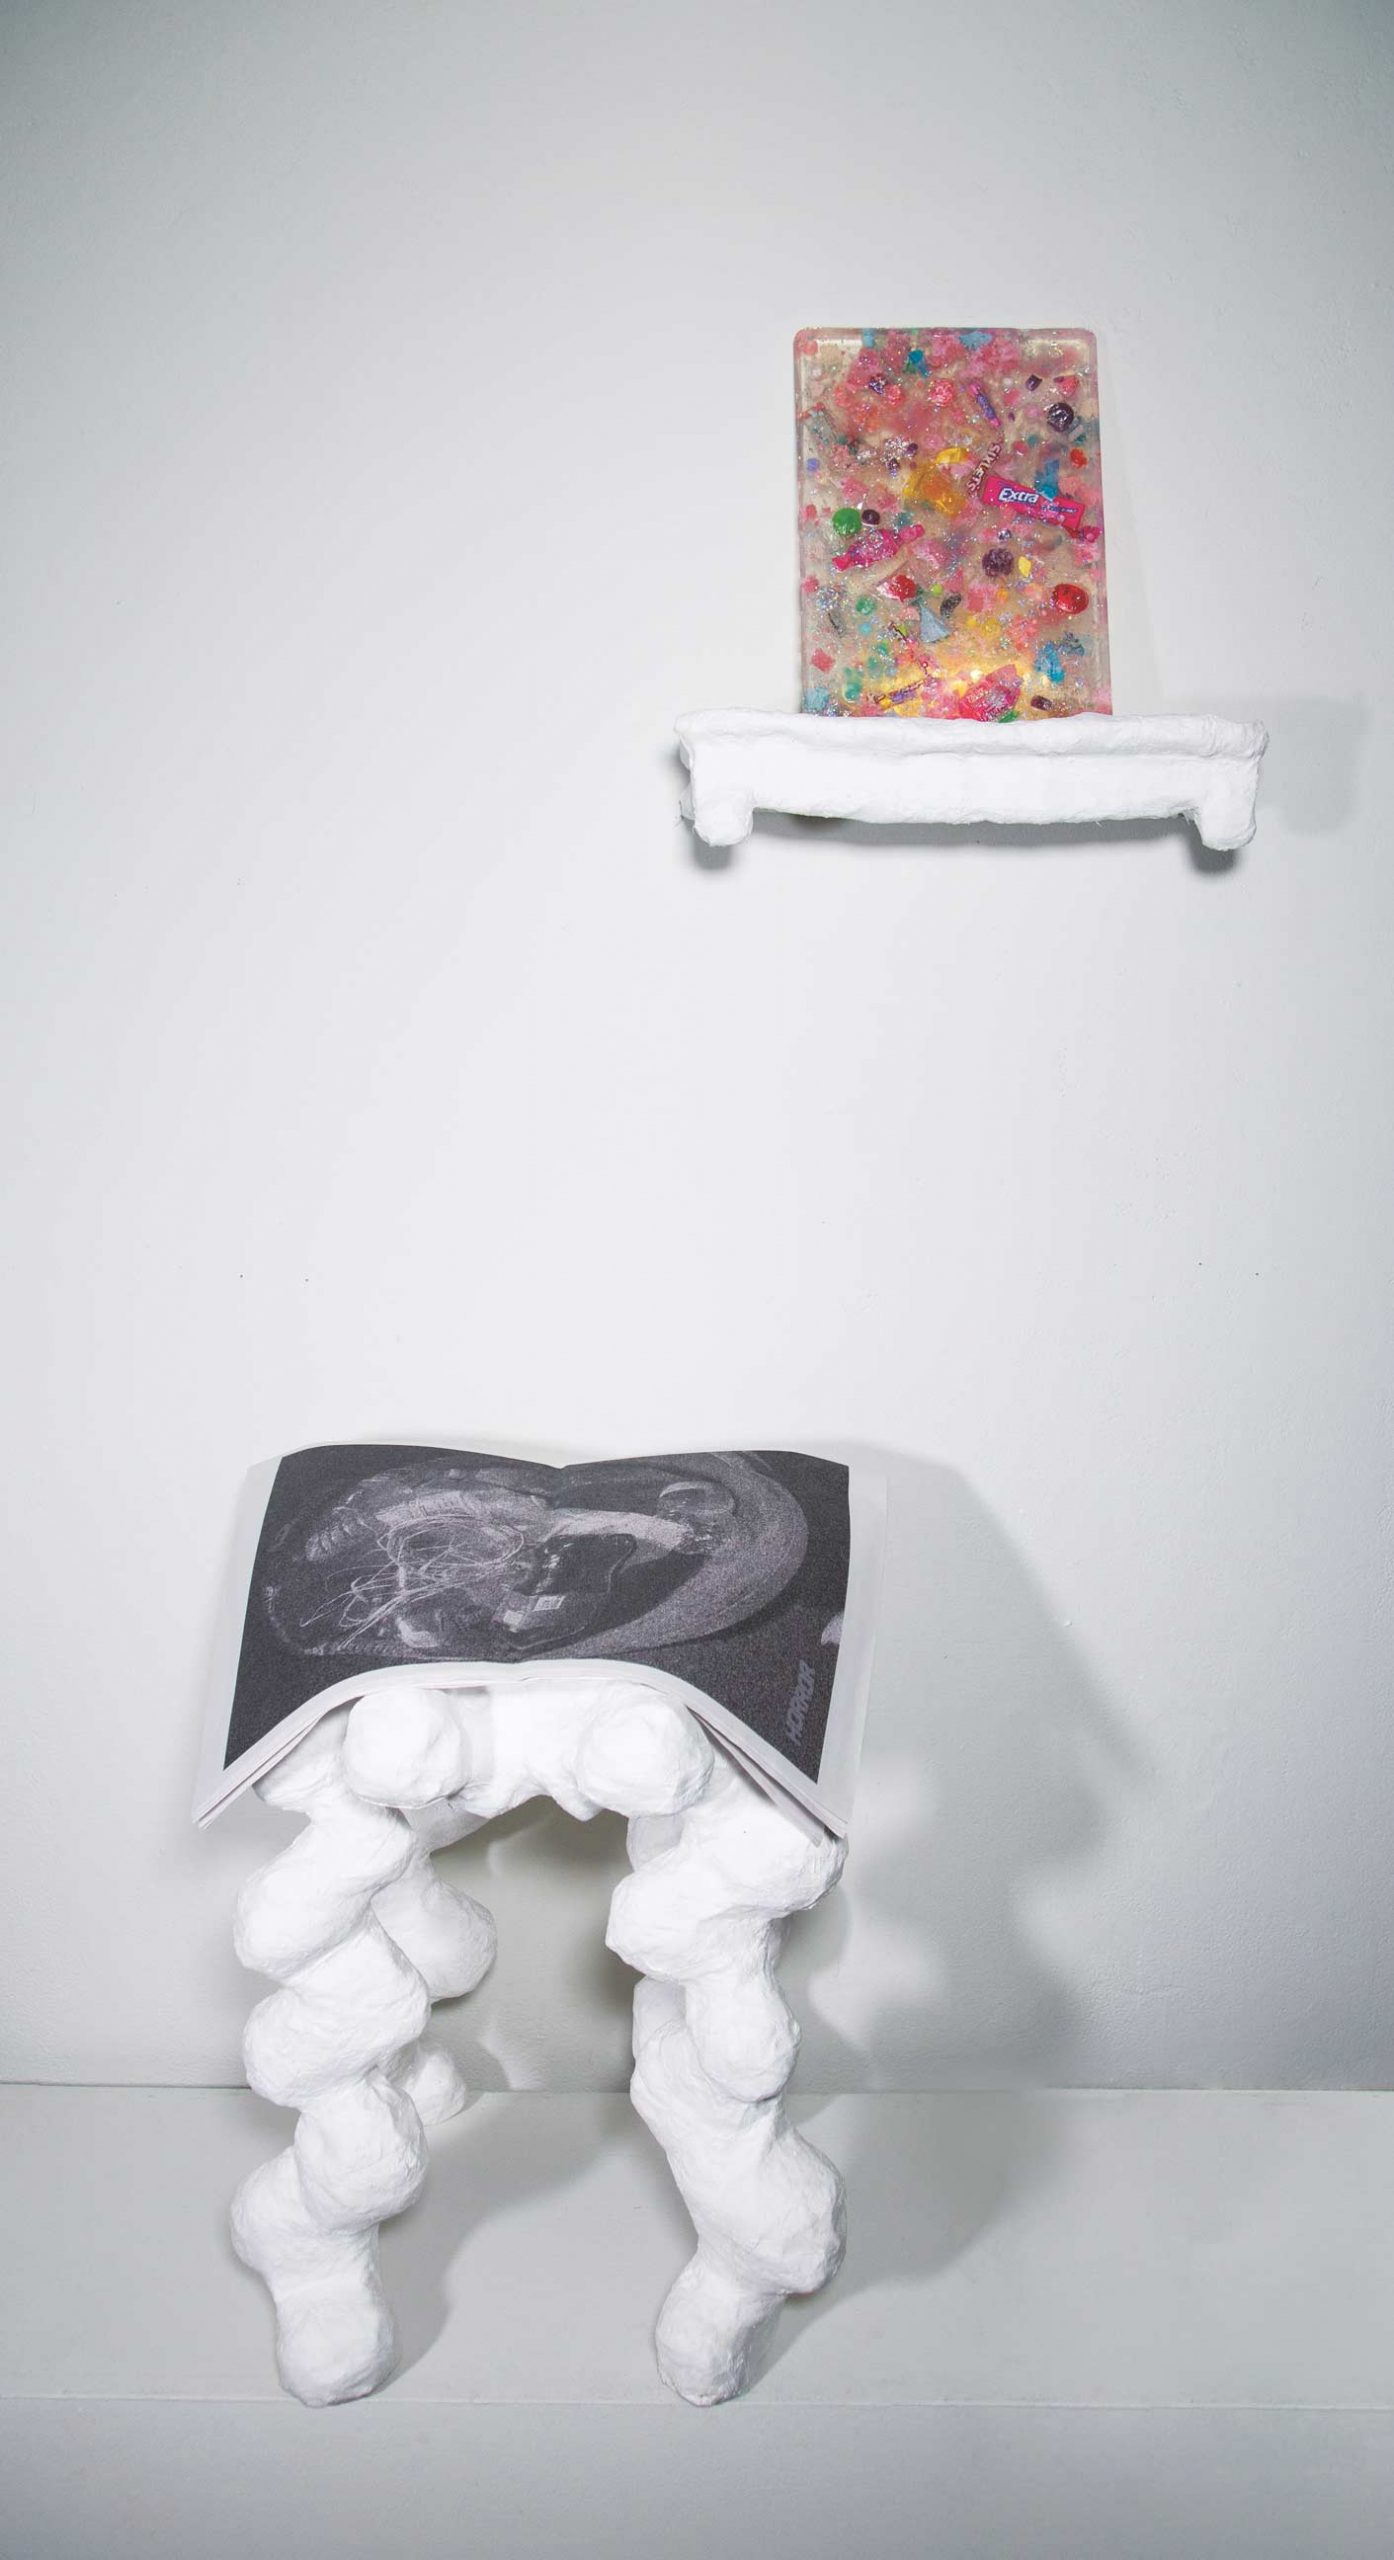 An installation featuring an organic-shaped, four-legged stool with an open black and white newspaper-like publication lying open and draped over the surface. The pages are open to a full page spread of a printed image. Above the stool and to the right is a white shelf with a colorful three-dimensional rectangle seated on it. The rectangle is a semi-transparent material with many colored objects embedded within.